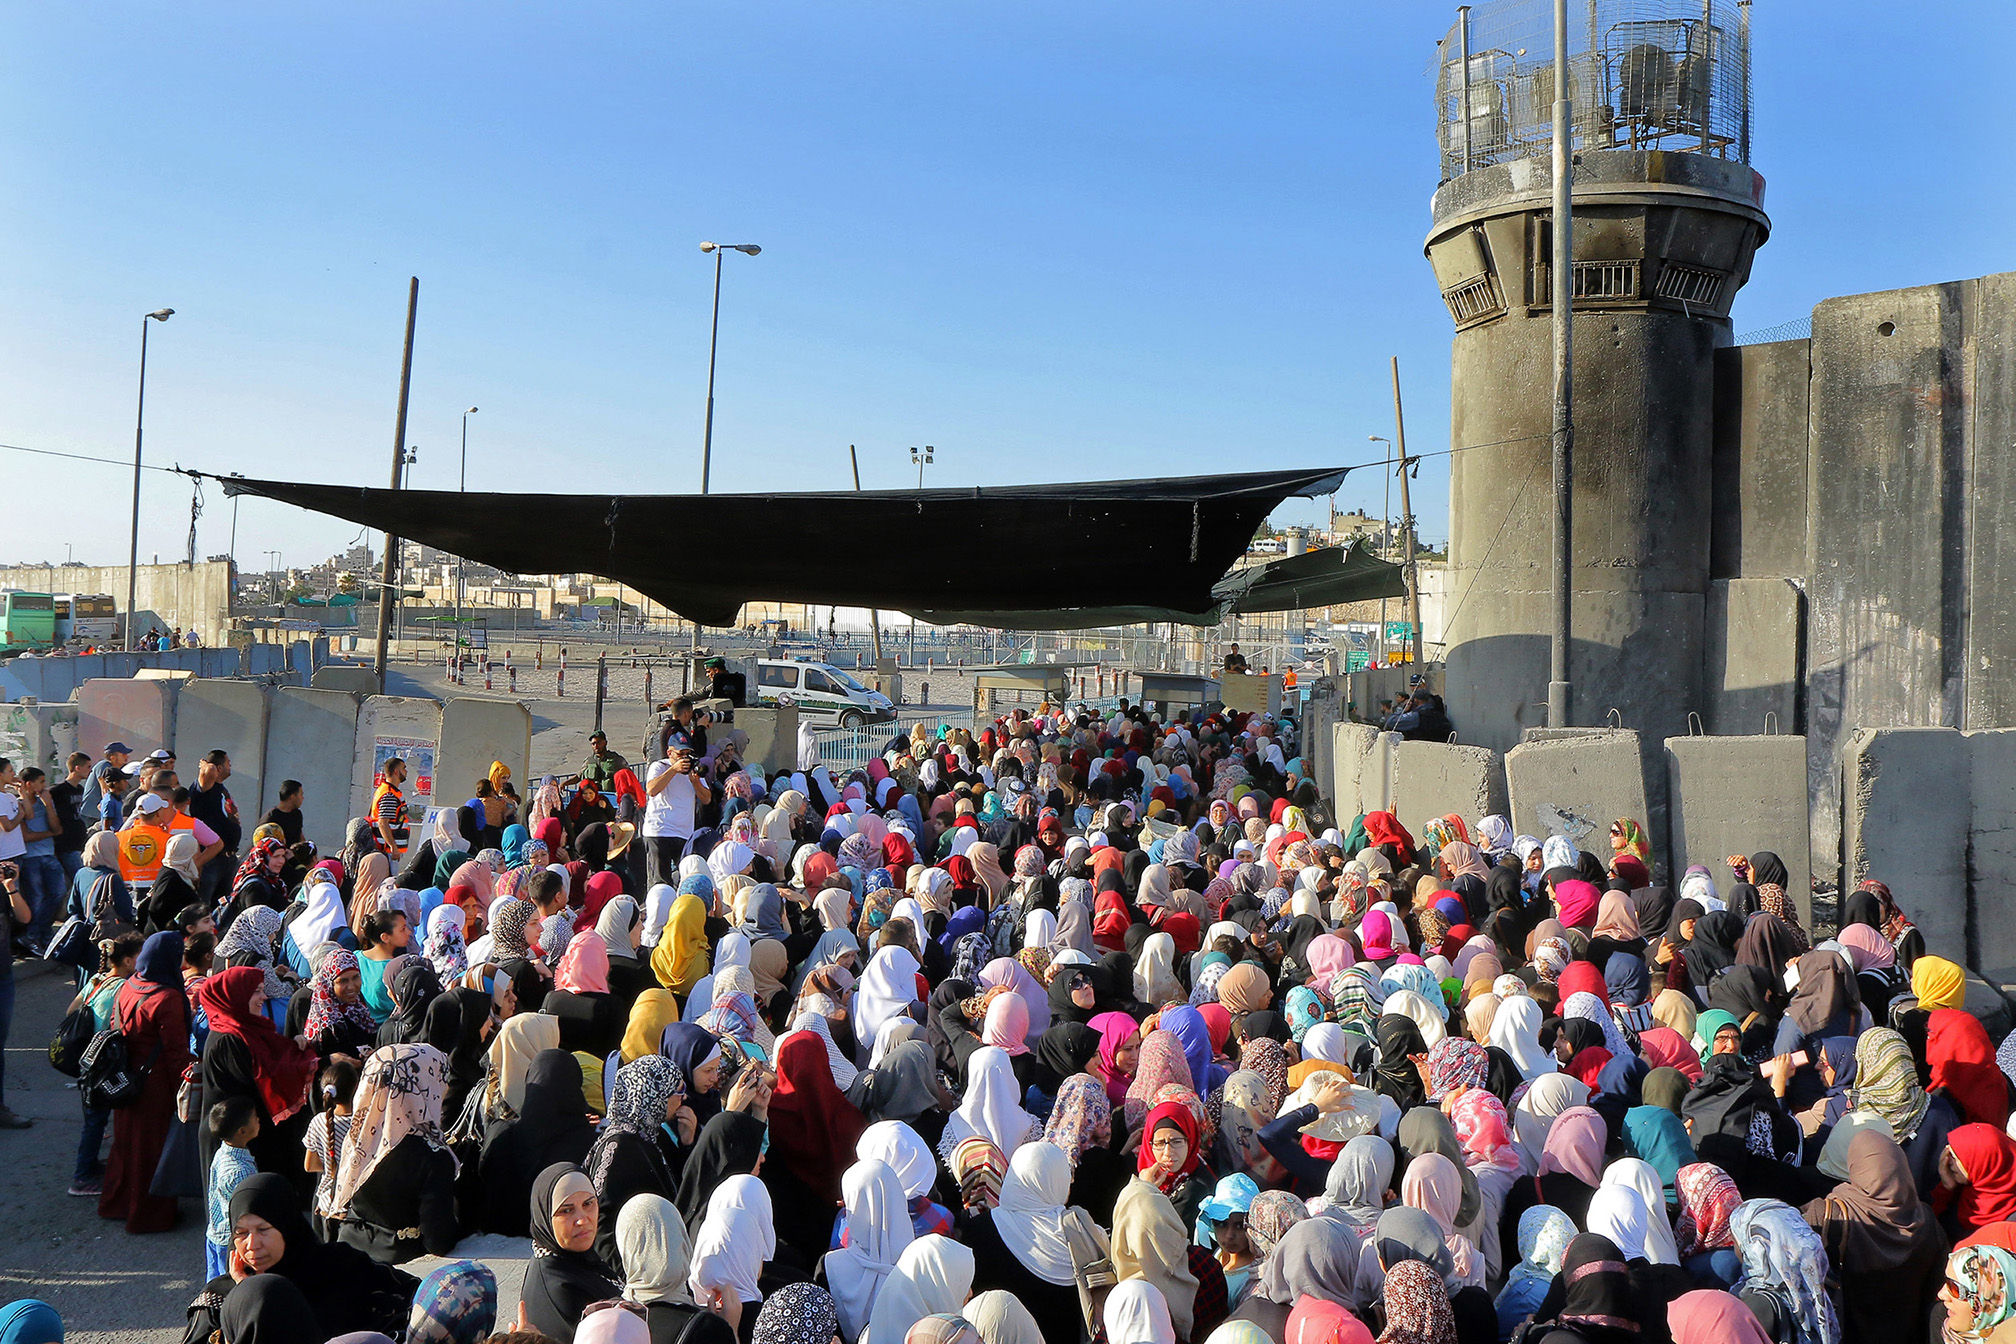 Palestinian women crossed through the Israeli military checkpoint of Qalandiya, a main crossing point between Jerusalem and the West Bank city of Ramallah,  headed to Jerusalem's Al-Aqsa mosque for the third Friday prayer of the holy Muslim fasting month of Ramadan, June 24, 2016.    (Photo by Ahmad Al-Bazz/GroundTruth)